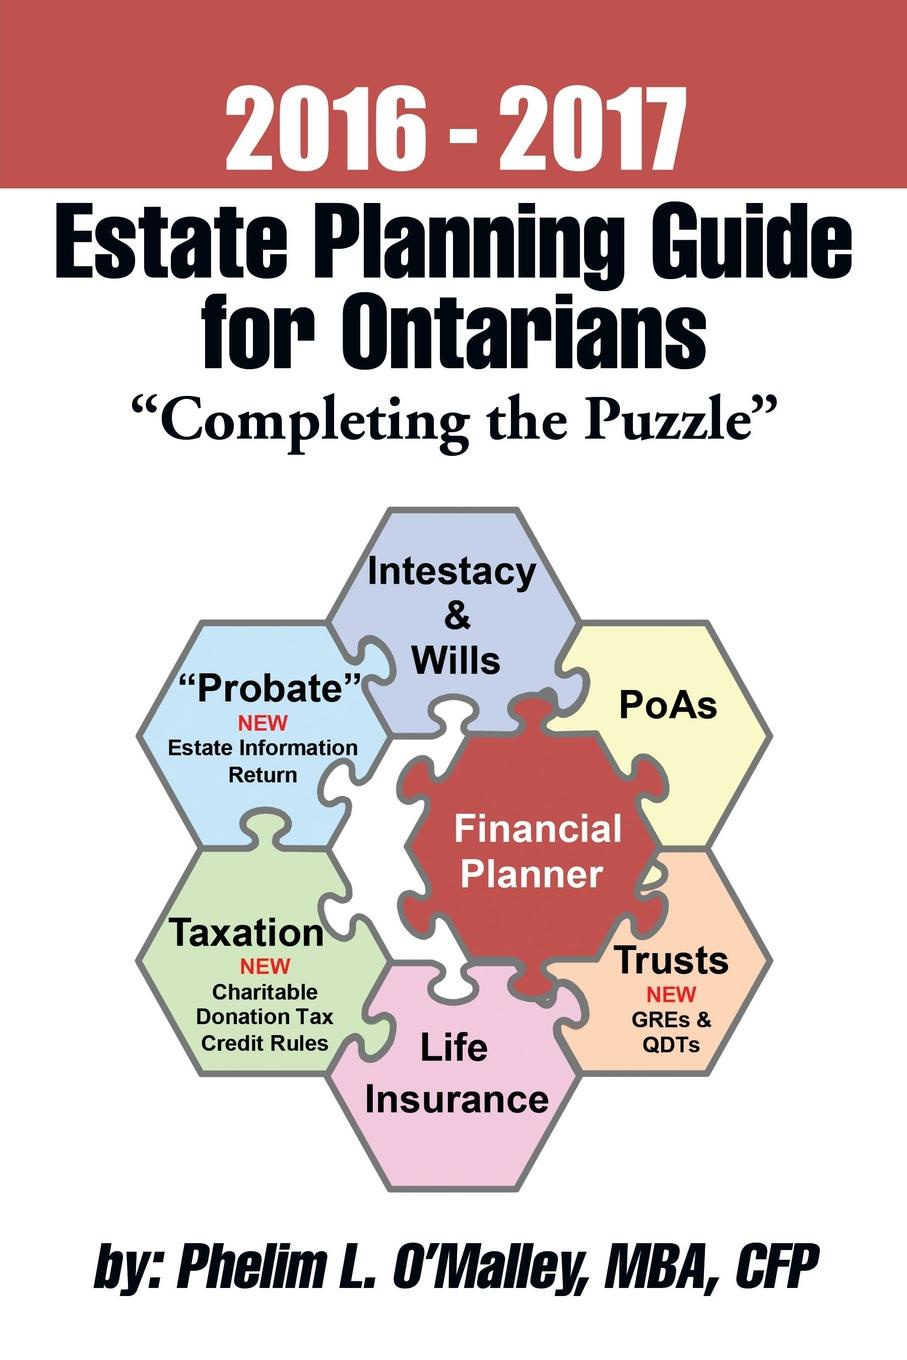 Cfp Phelim L. OMalley Mba, O. Malley Mba 2016 - 2017 Estate Planning Guide for Ontarians .Completing the Puzzle.